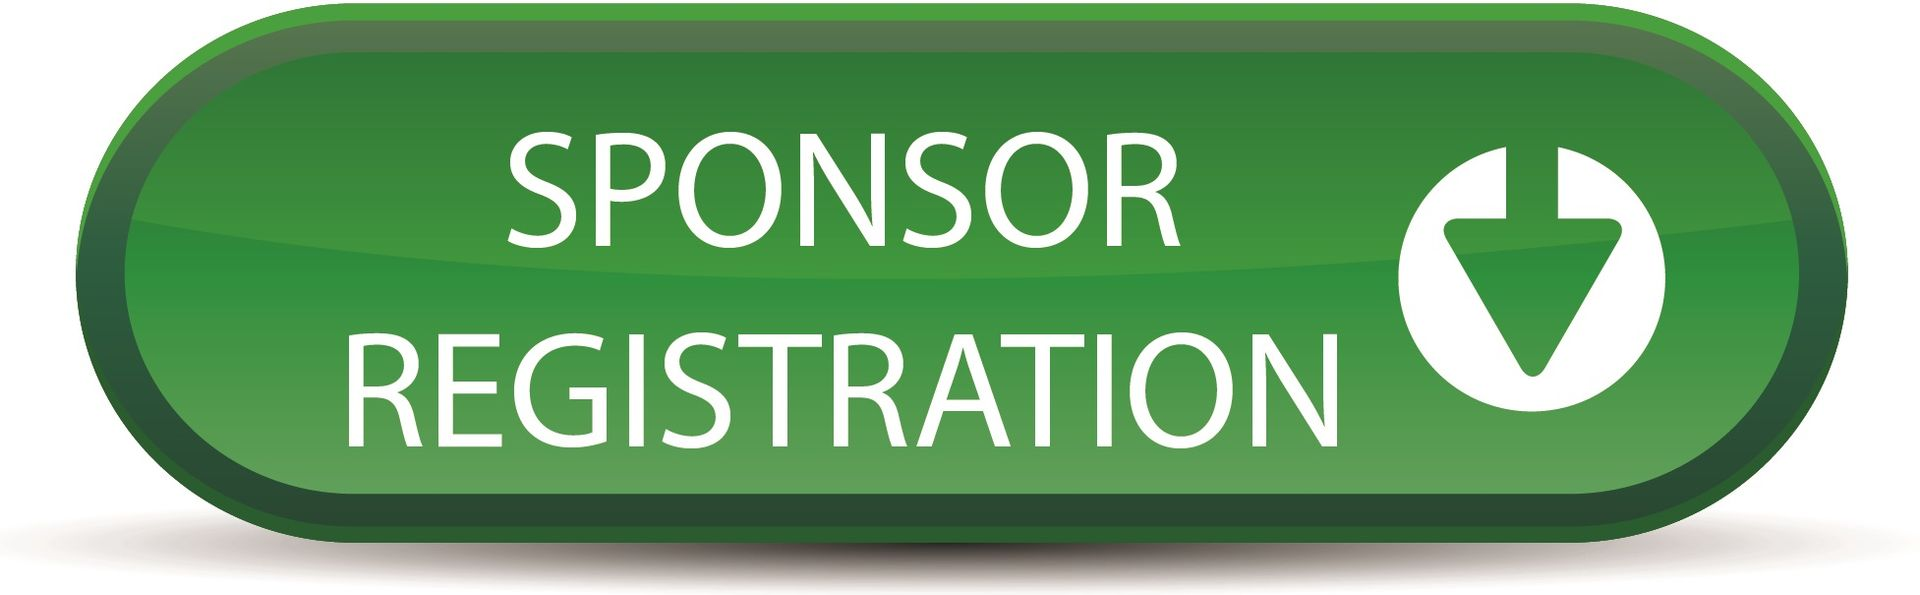 Sponsorship Registration